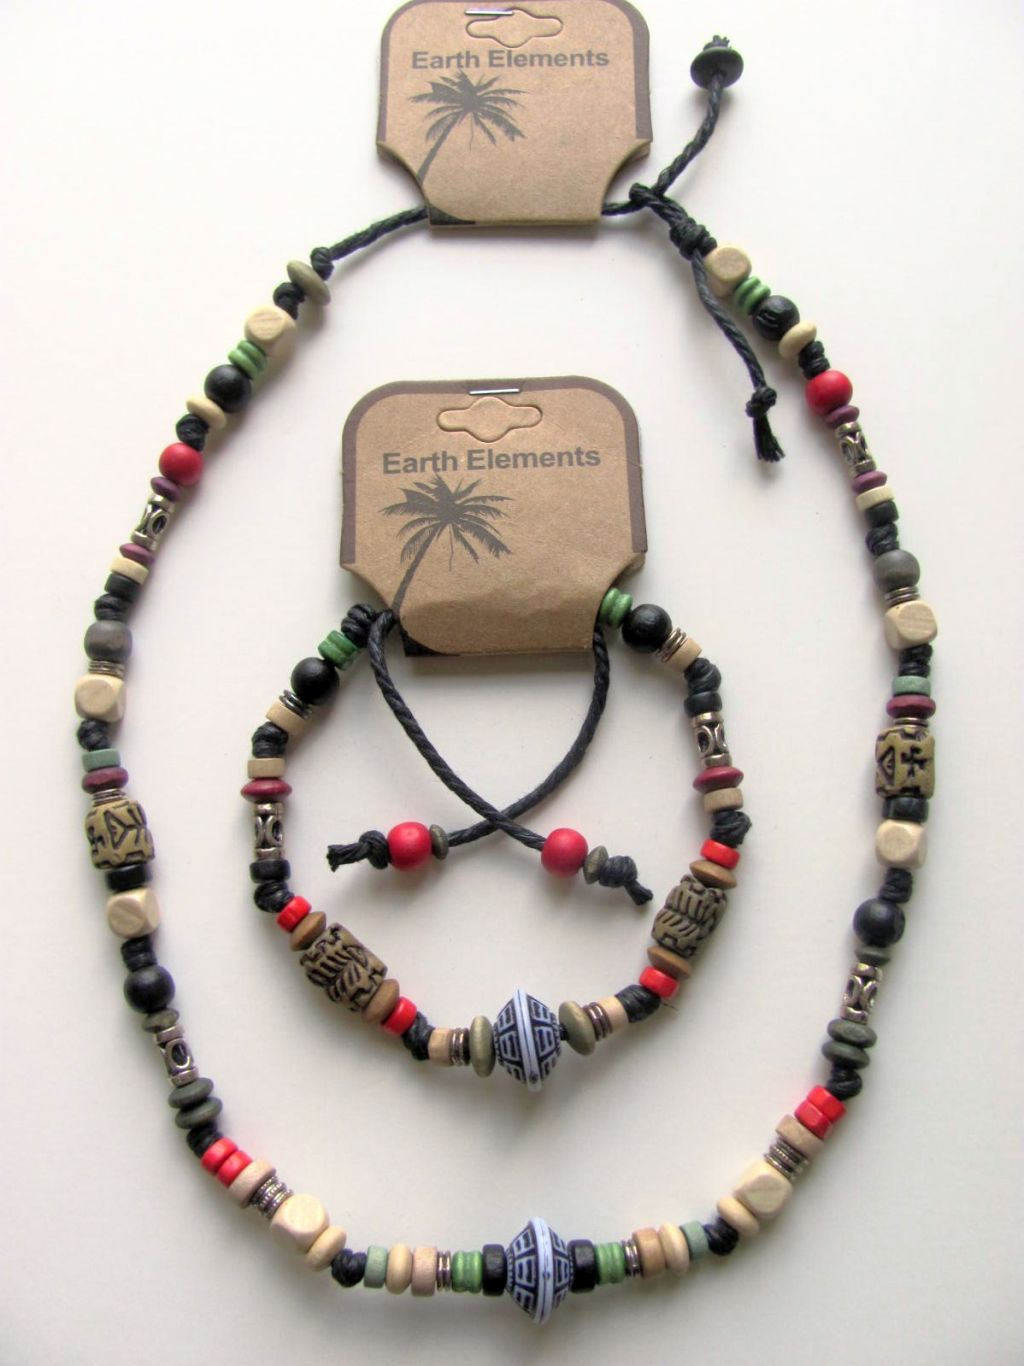 Barbados Earth Elements Spiritual Beaded Necklace Bracelet